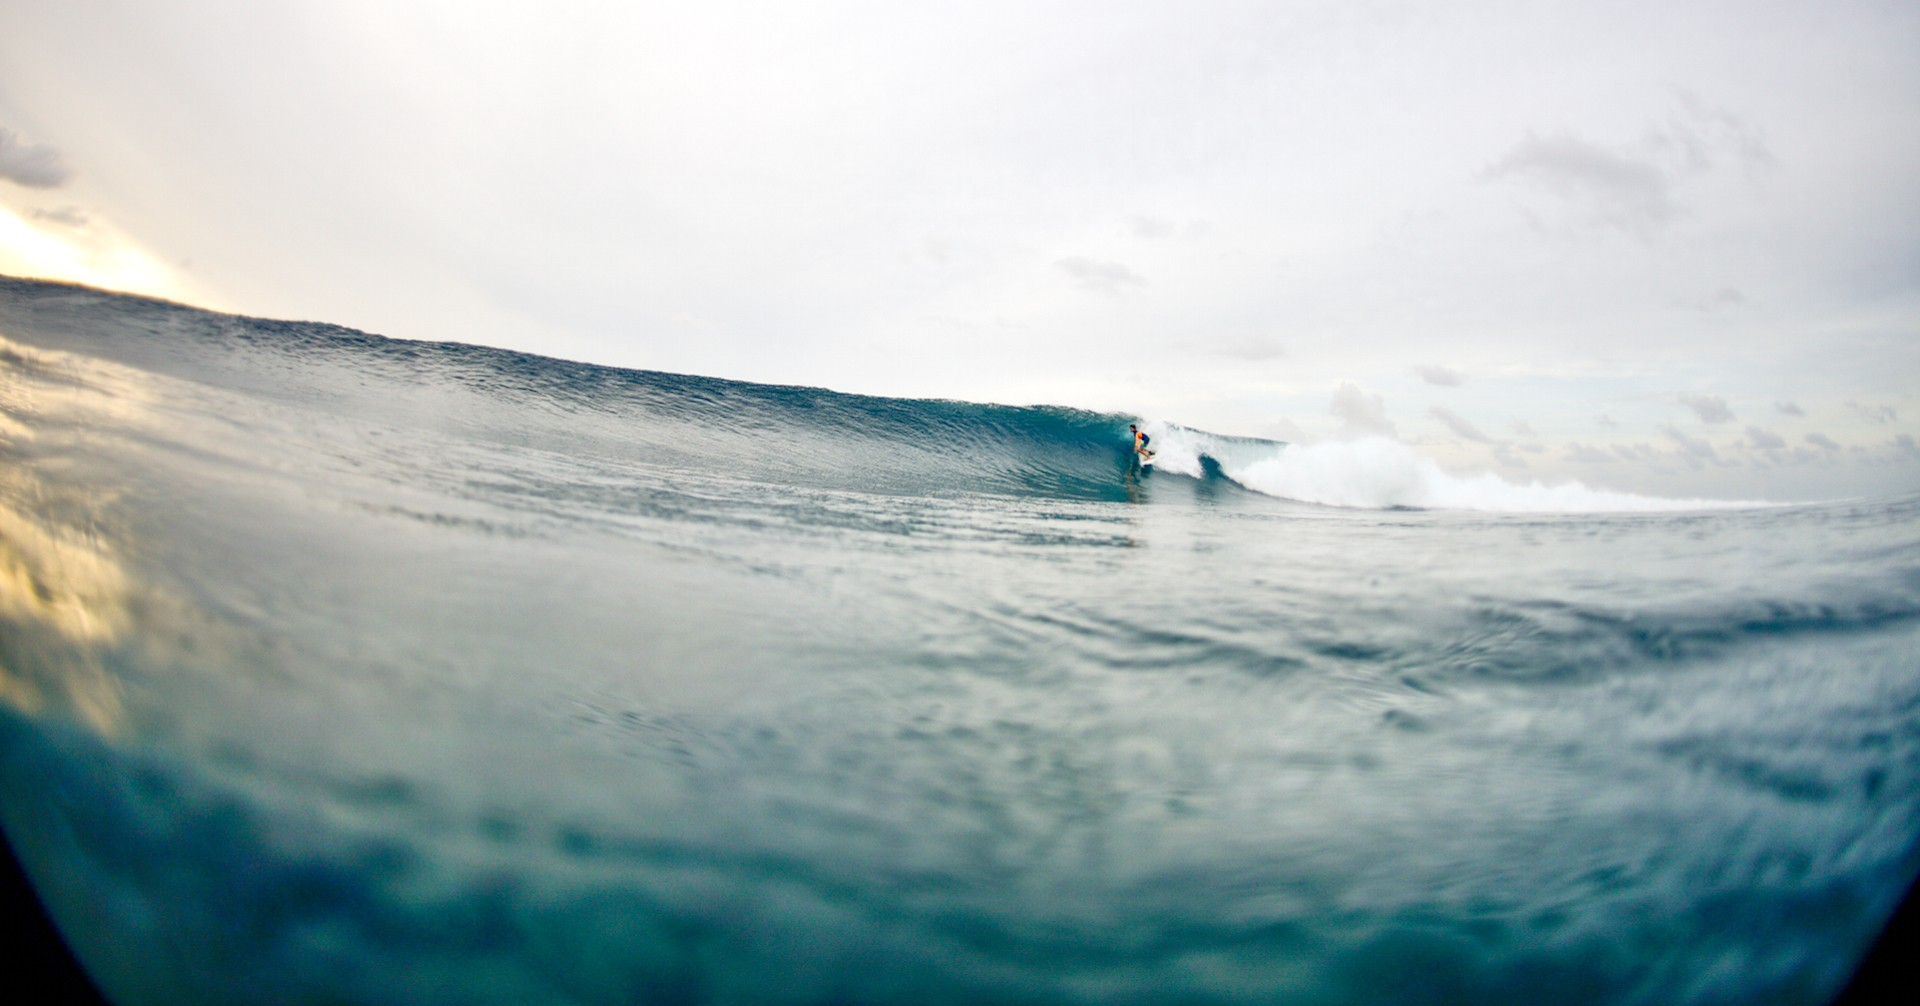 João Mendonça is surfing tubes in Maldives. Micasurfboards the Grom is his quiver.